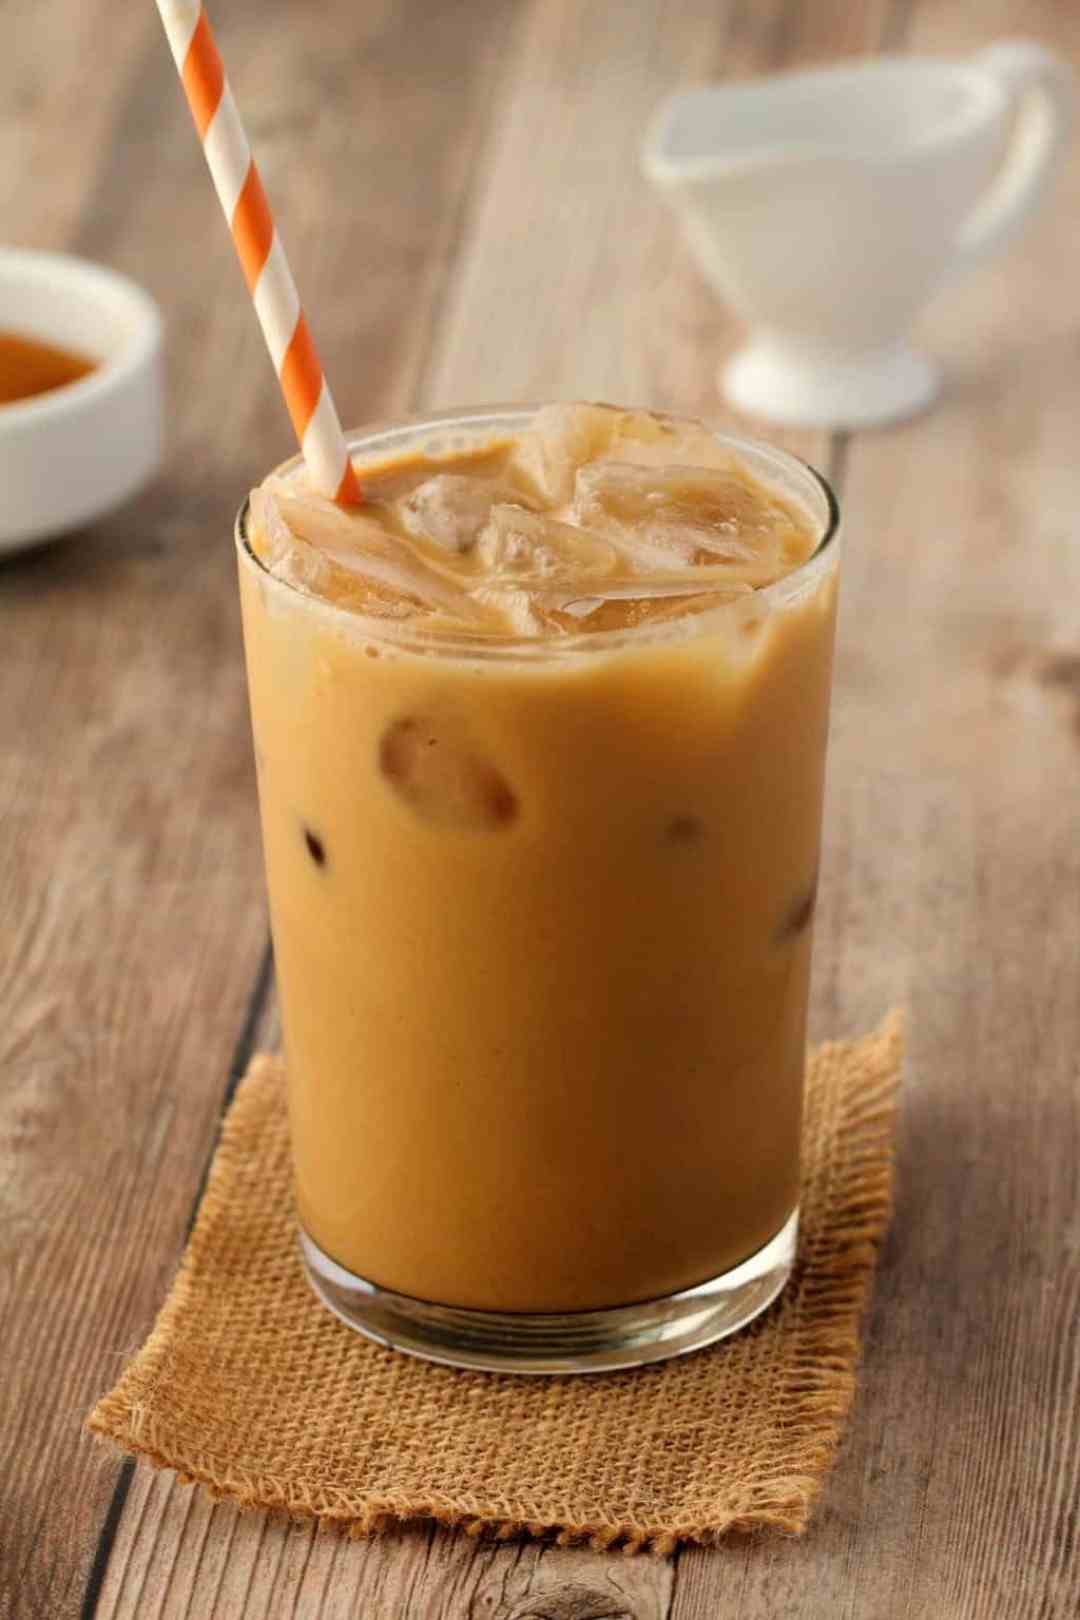 Vegan Iced Coffee in a glass with an orange and white straw.